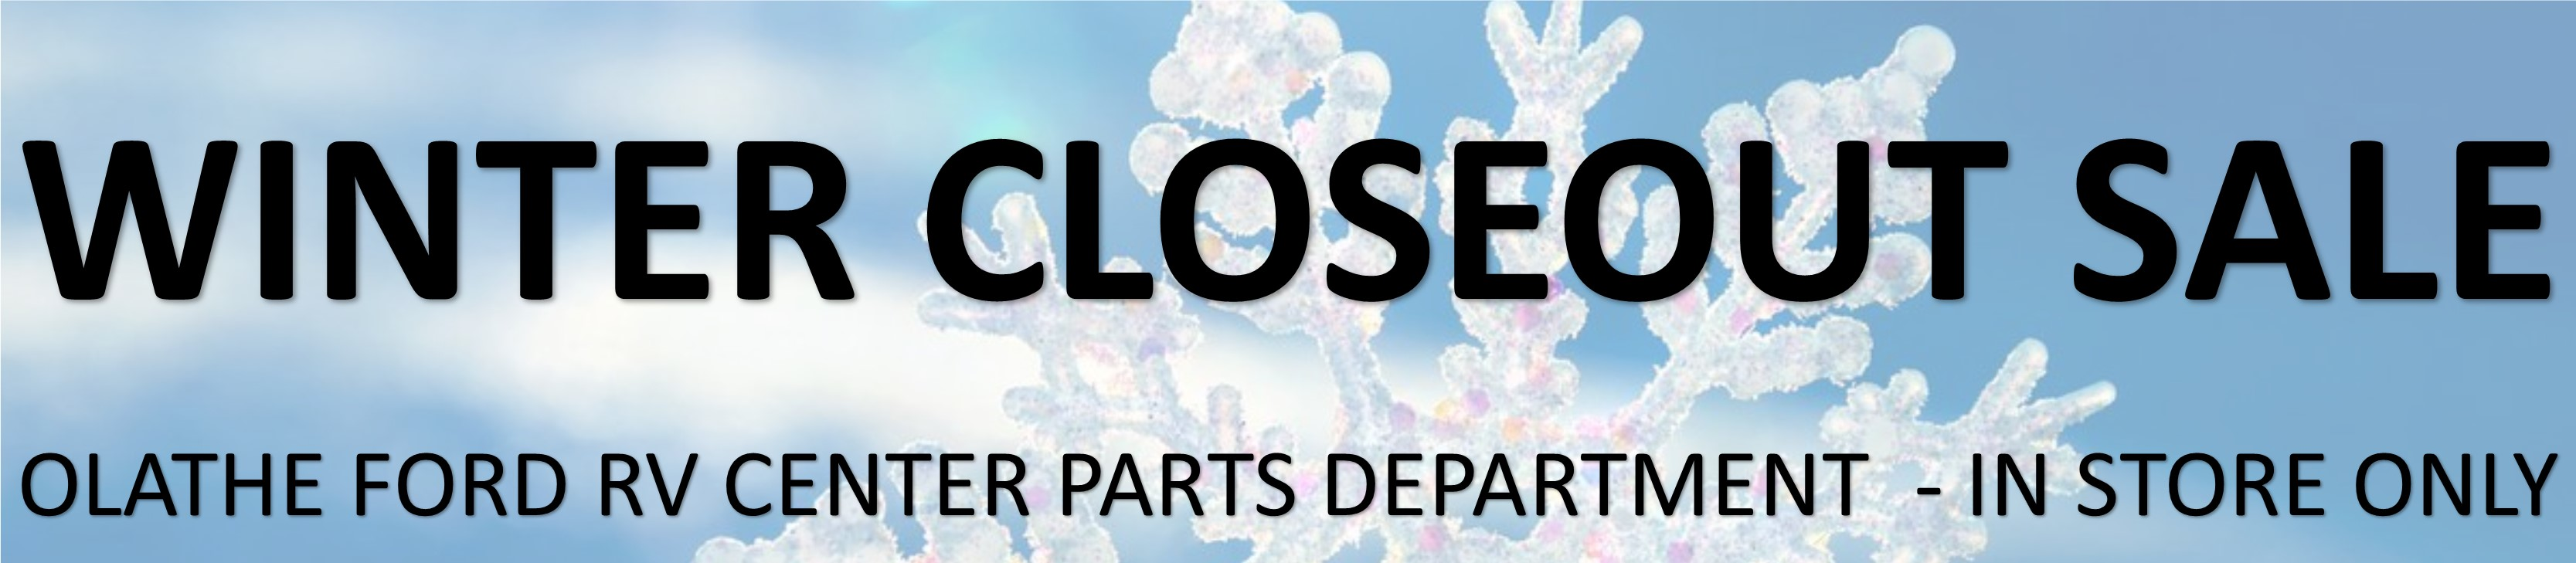 Parts Dept Winter Closeout